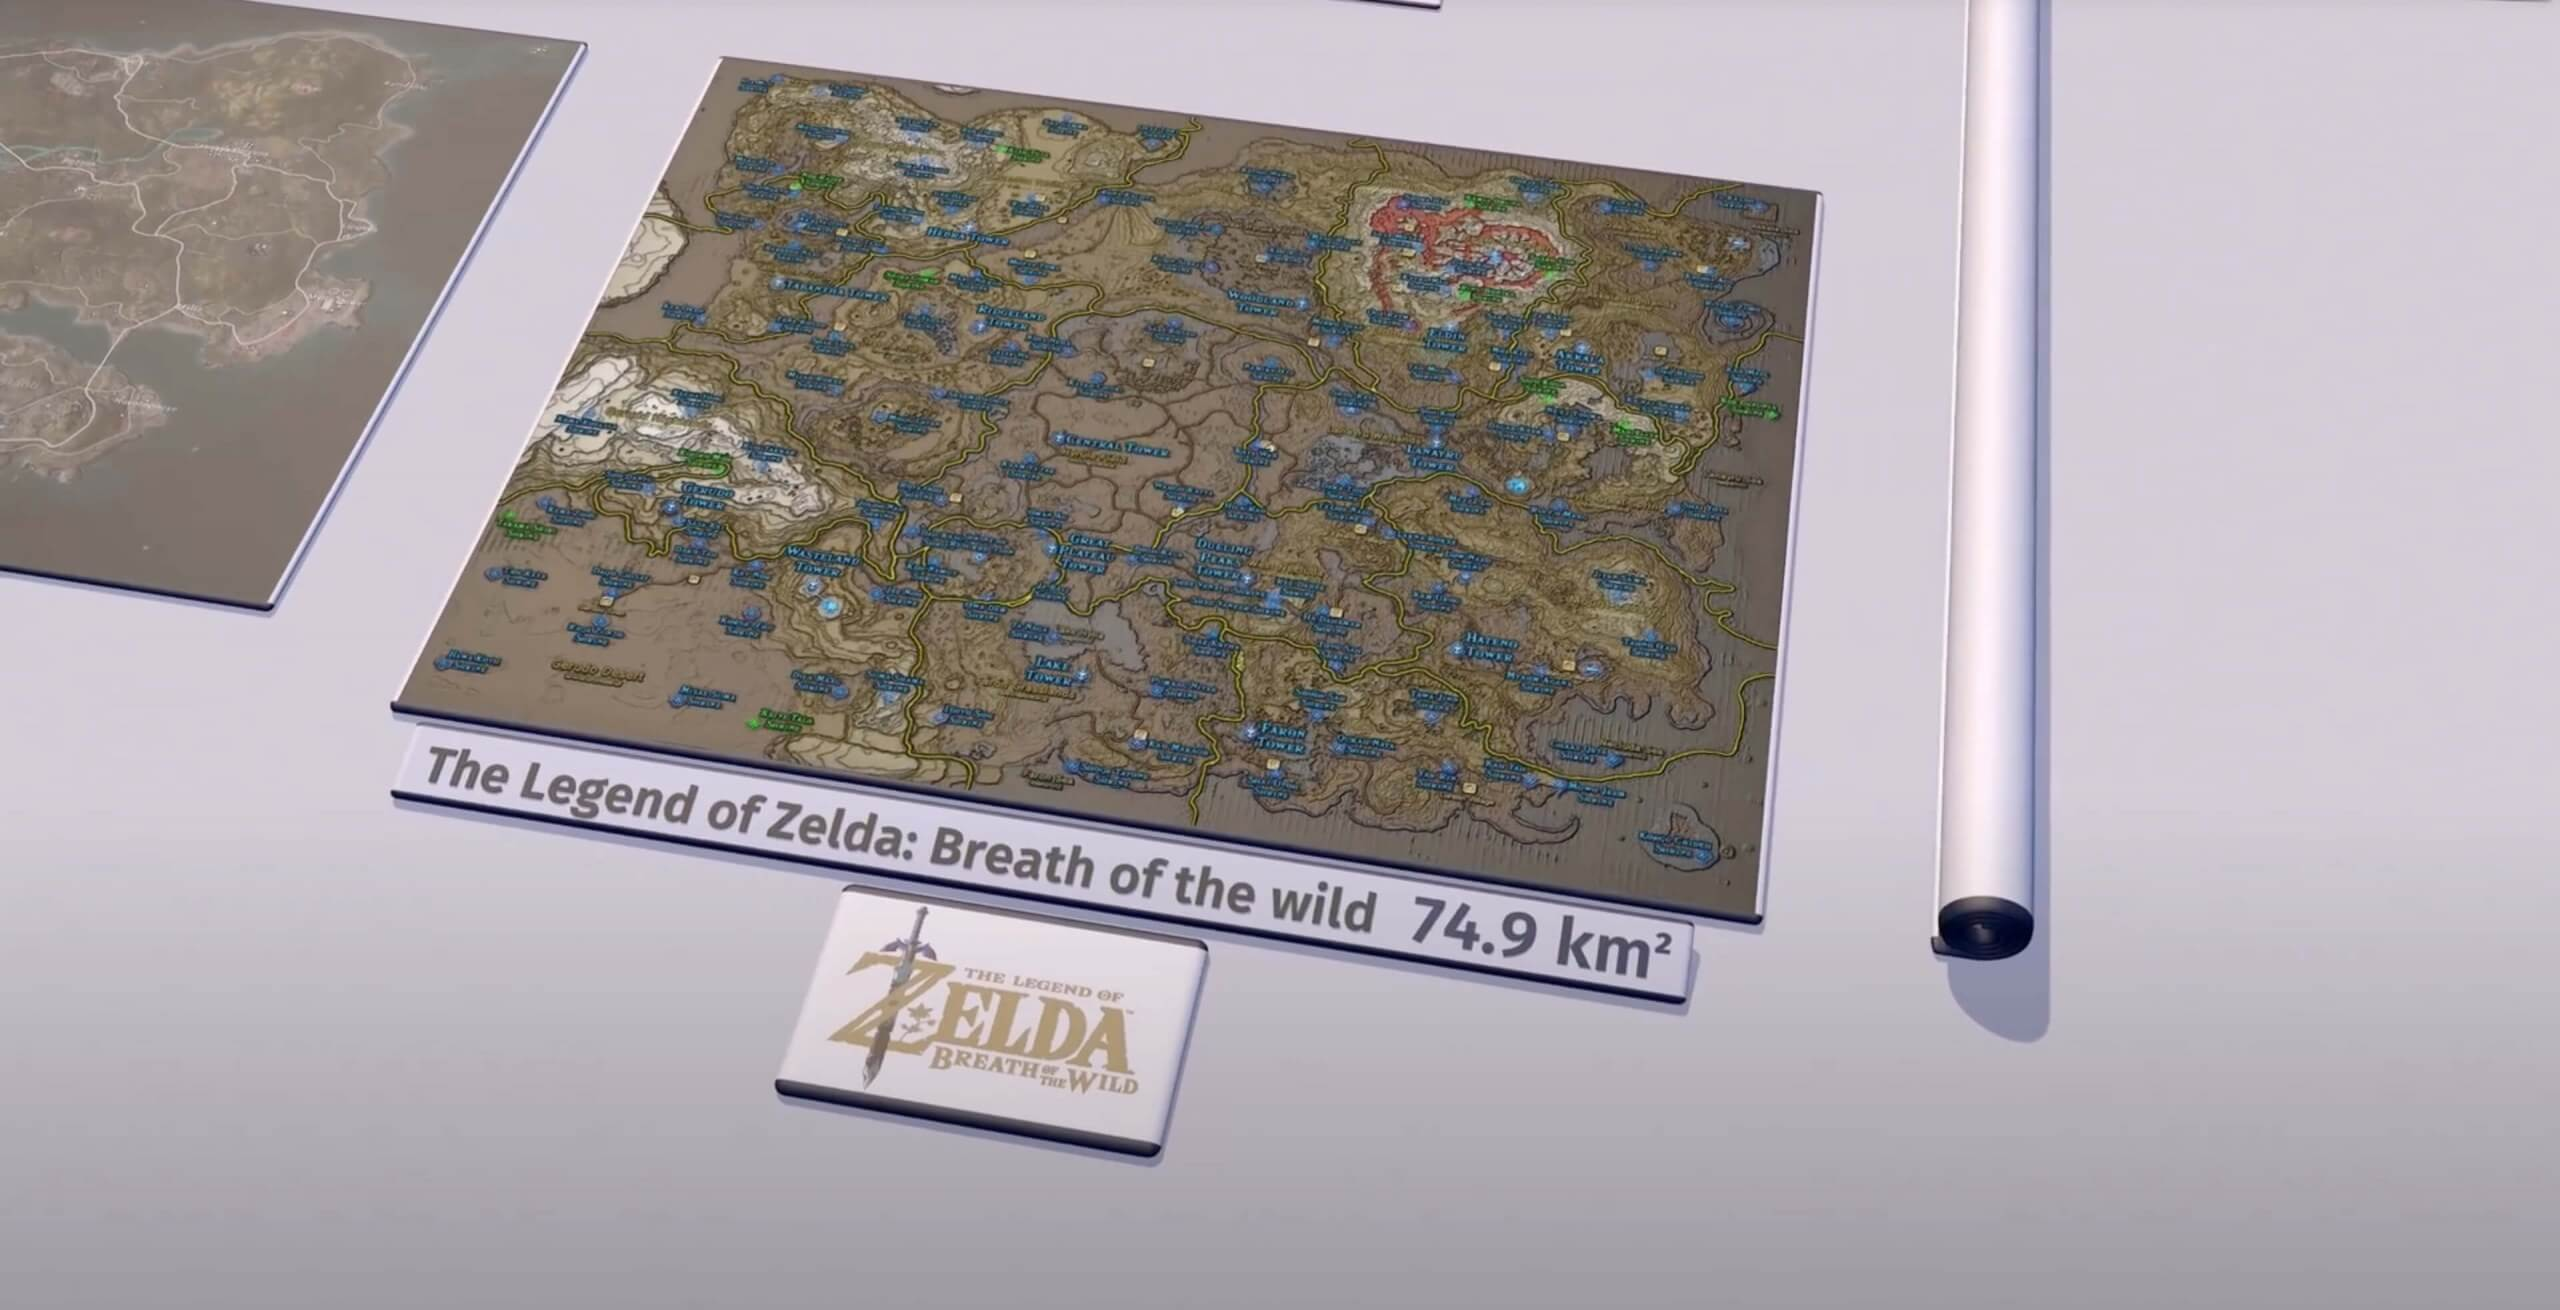 Your favorite video game maps, visualized